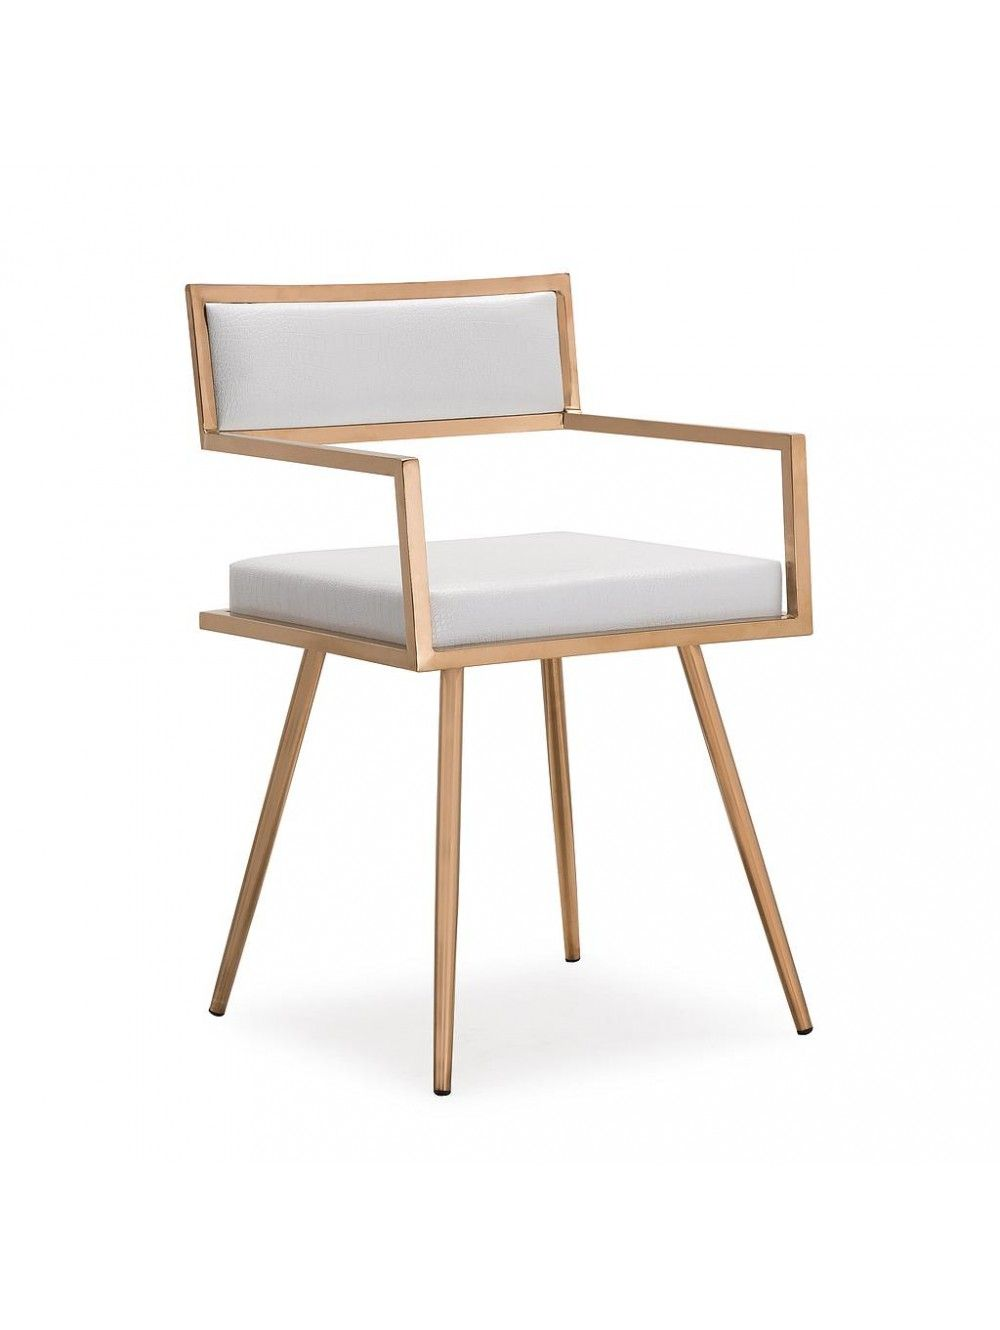 Quain Arm Chair, Cream (Set of 2) | Arms, Living spaces and Spaces